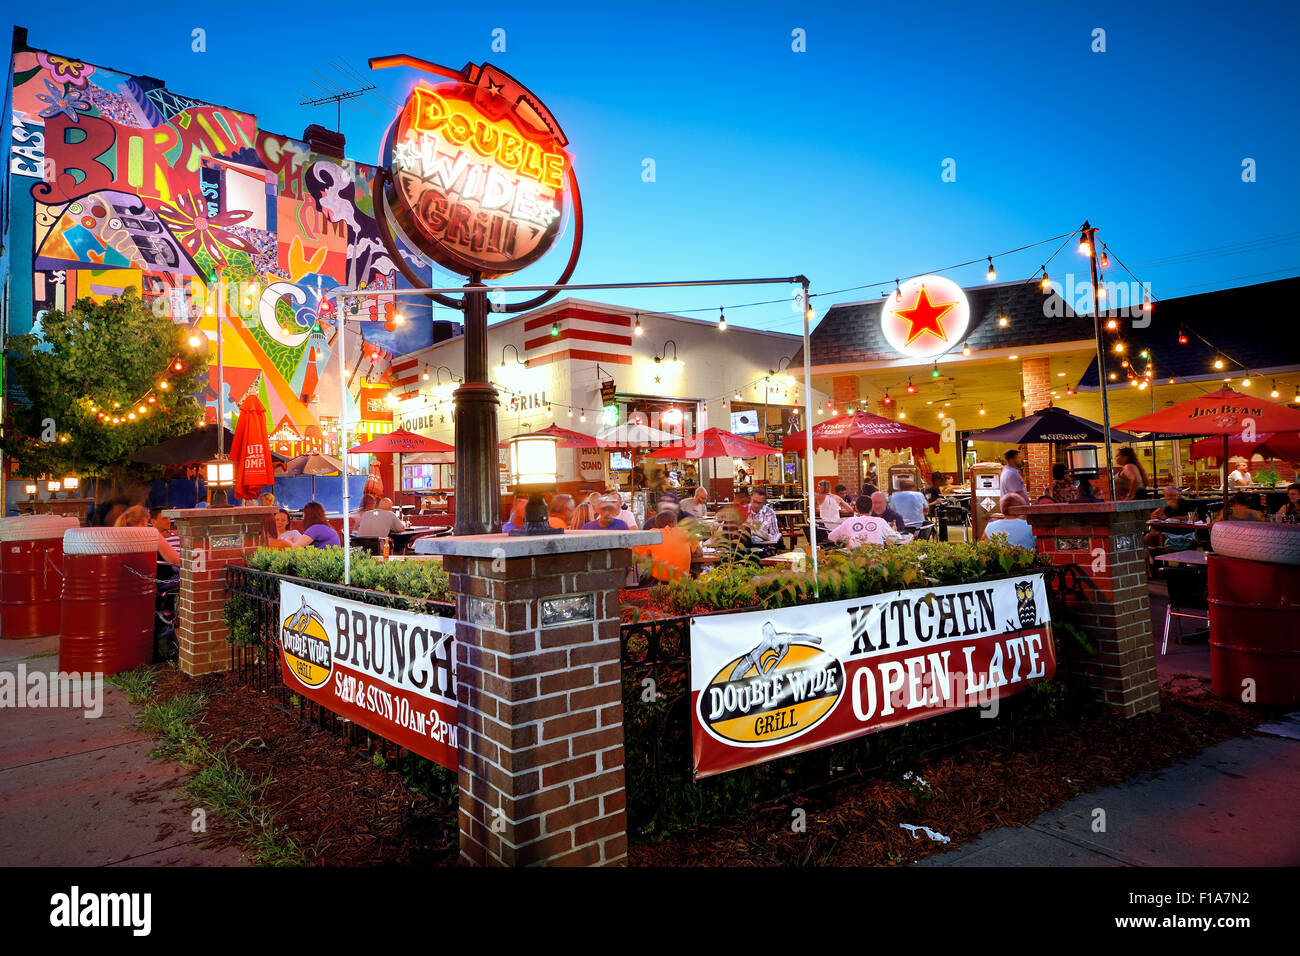 A nighttime shot of the Double Wide Grill in Pittsburgh's South Side neighborhood - Stock Image